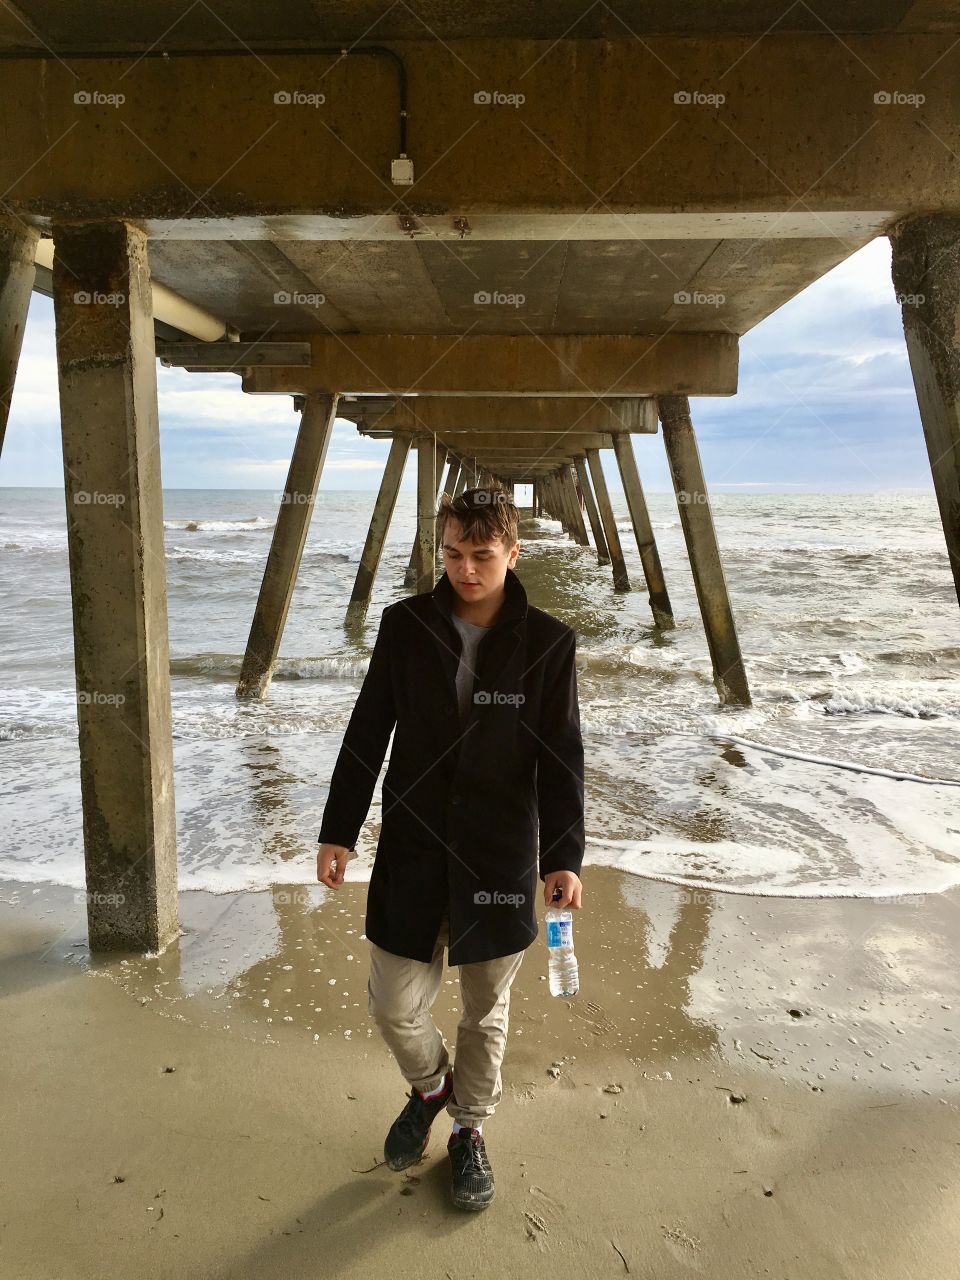 Stylish young man wearing black wool coat and holding water bottle walking toward camera under ocean Jetty